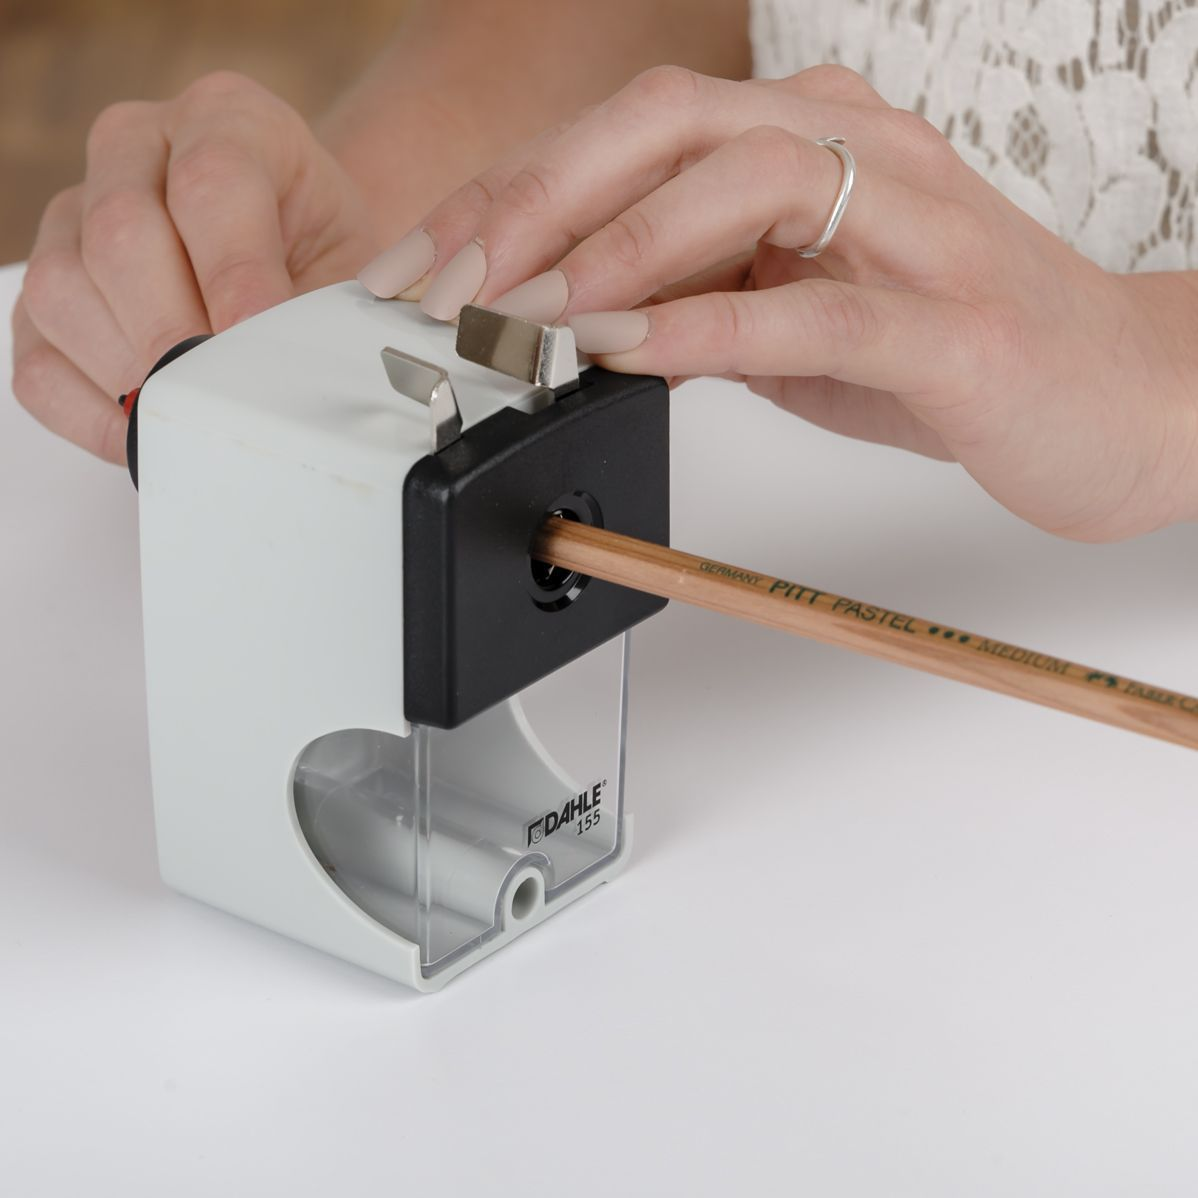 Its all about control with our rotary pencil sharpeners